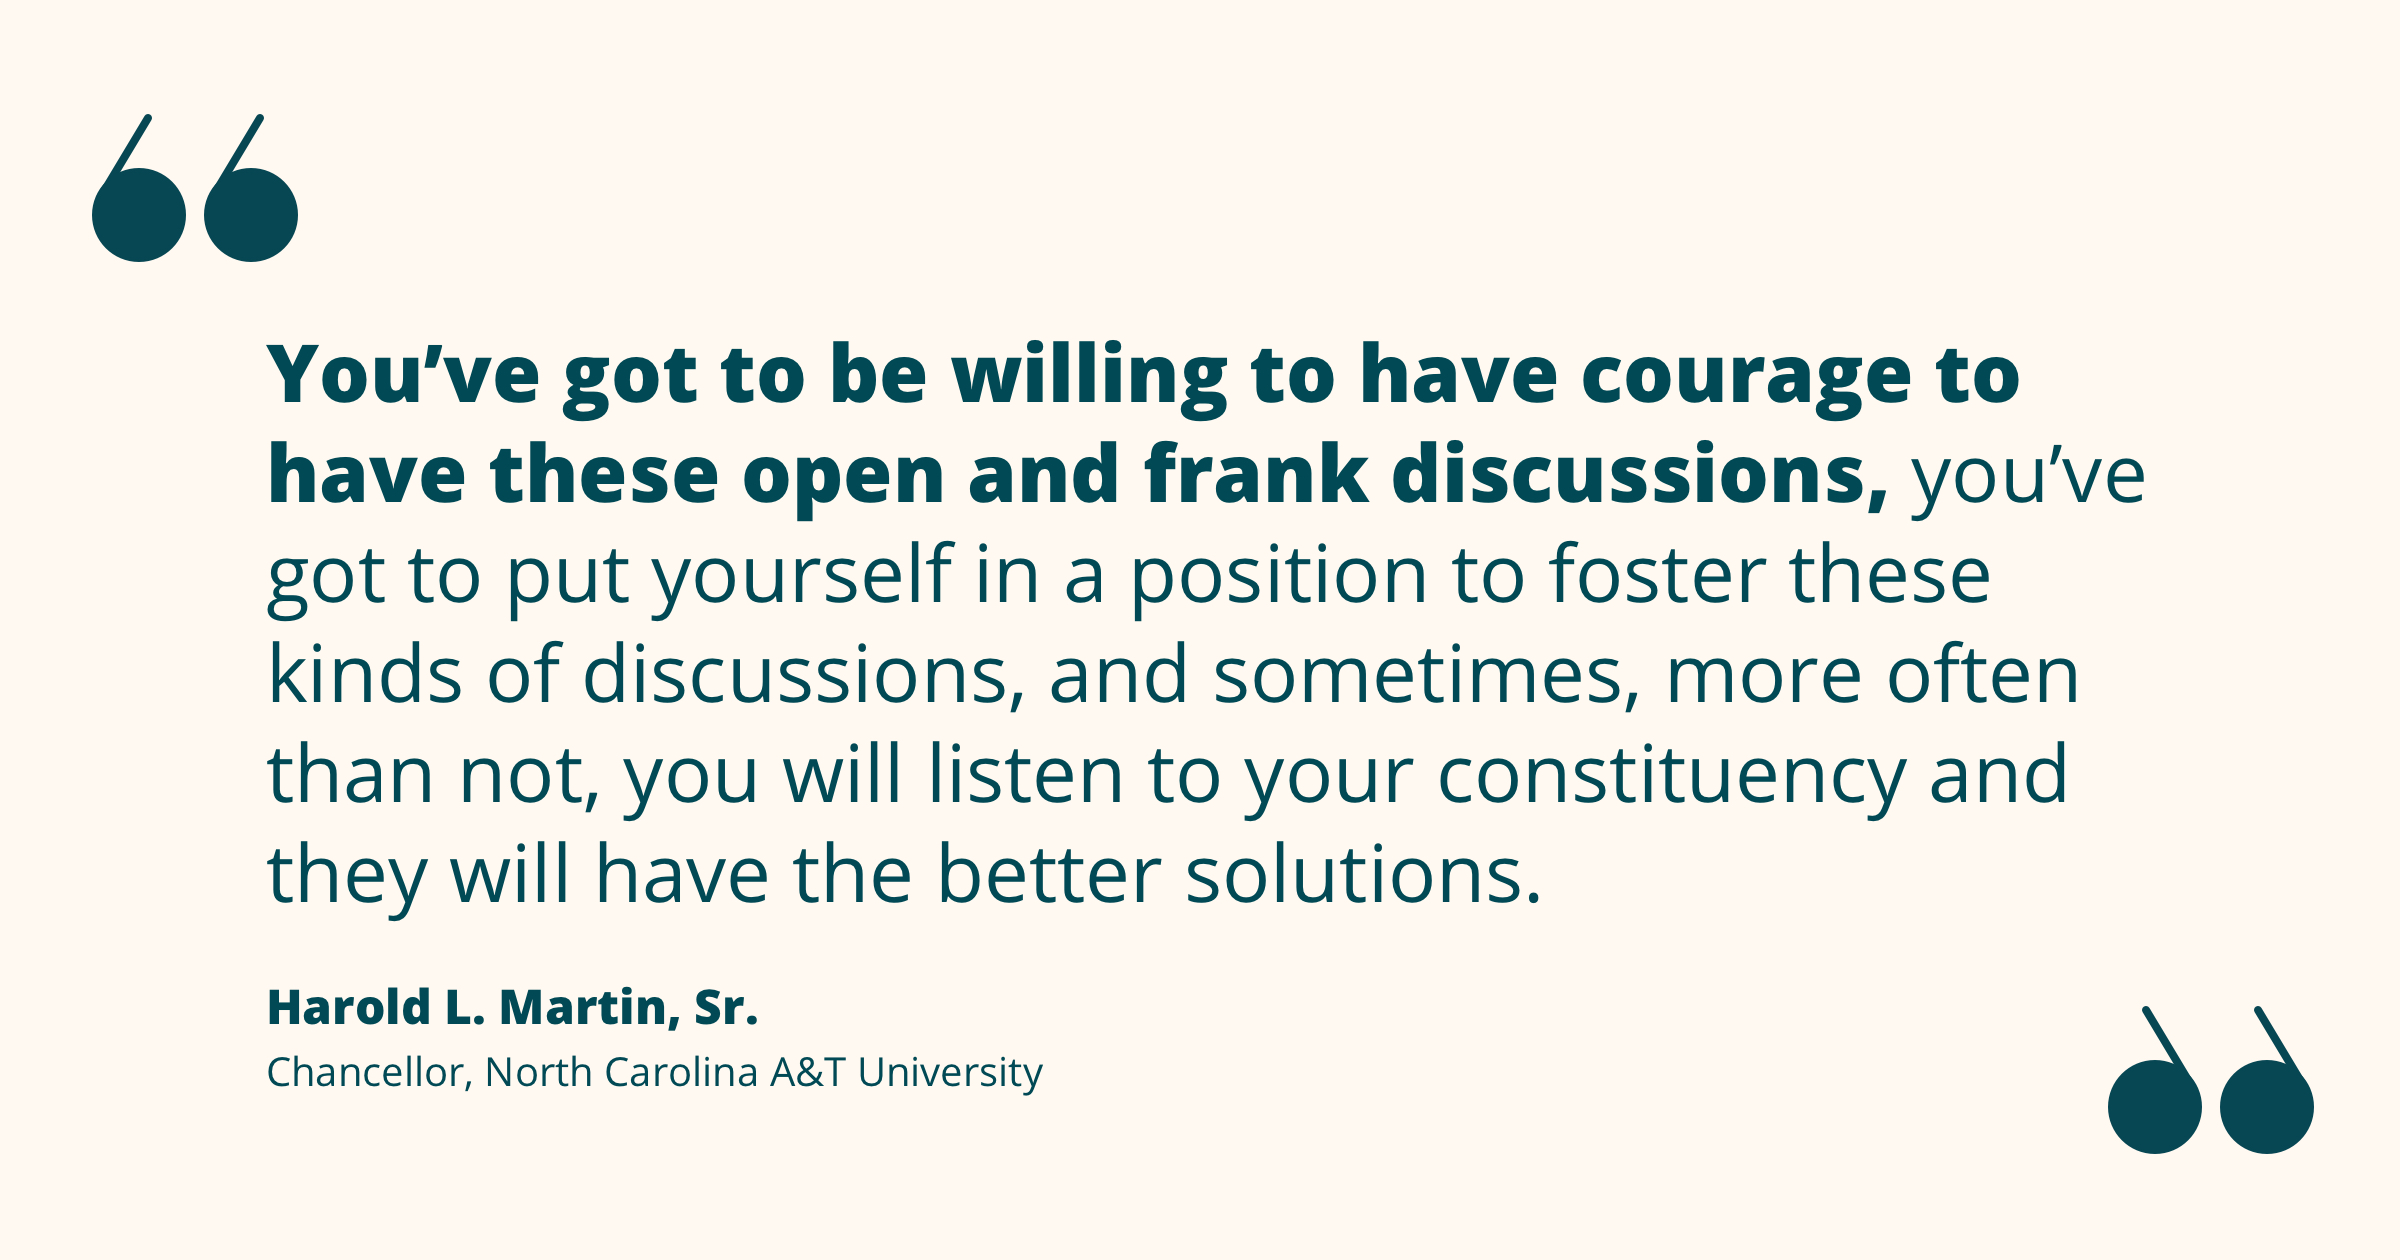 Quote from Harold Martin re: initiating open and frank discussions to share with and learn from your constituency, who often have the better solutions.